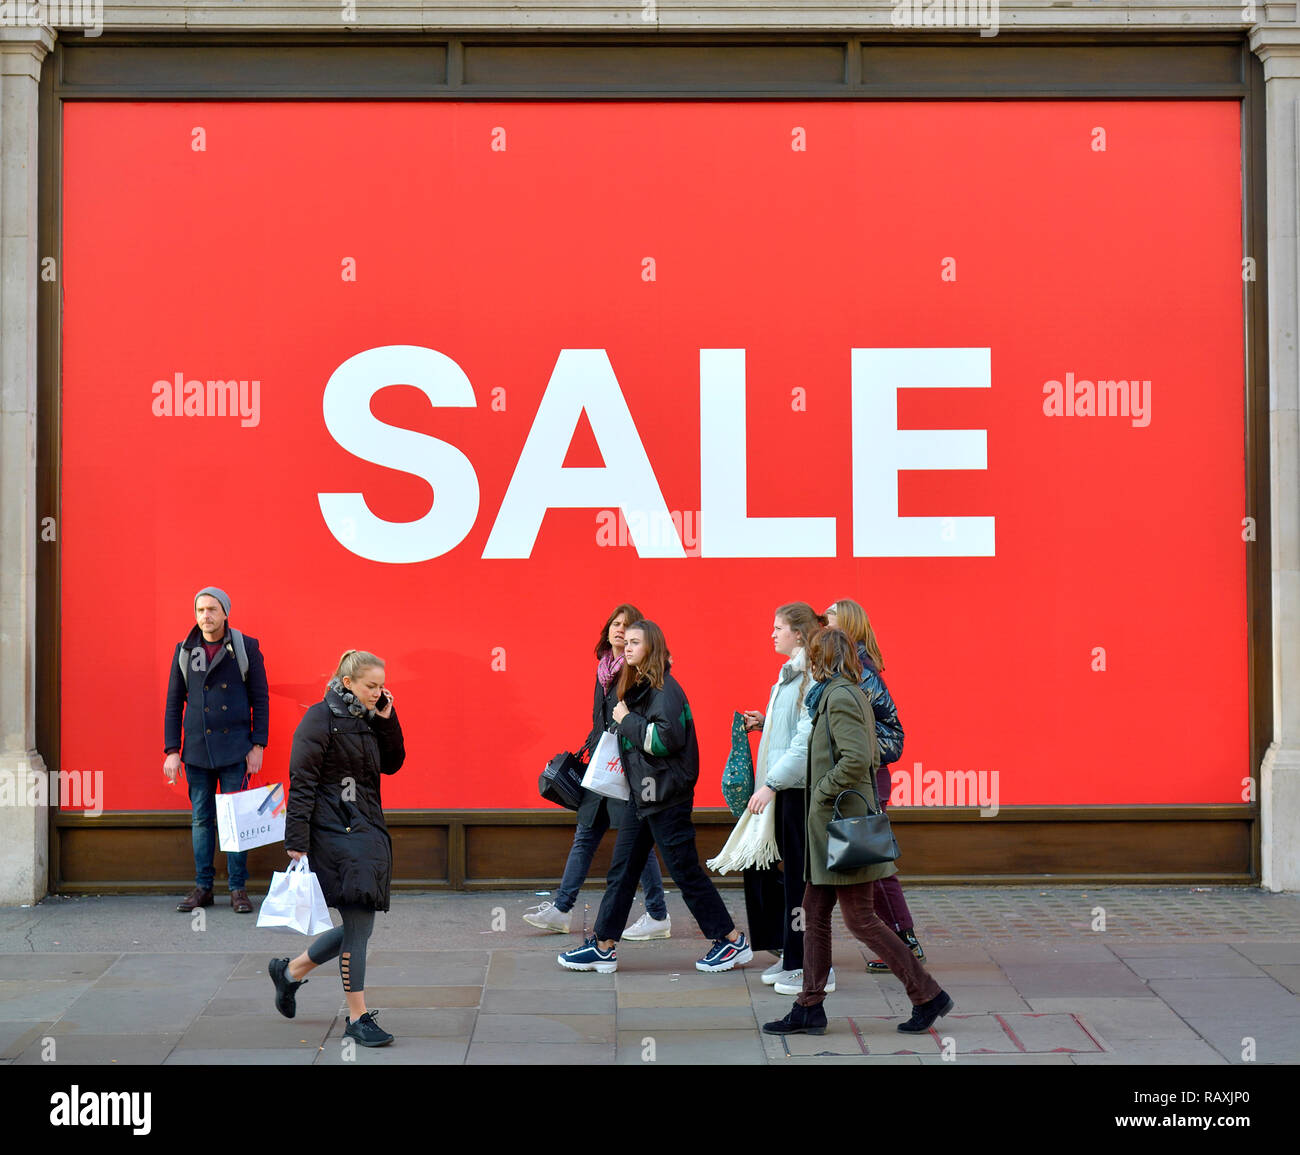 SALE sign in shop window (H&M, Regent Street) in January. London, England, UK. [SHOP LOGO DIGITALLY REMOVED] - Stock Image